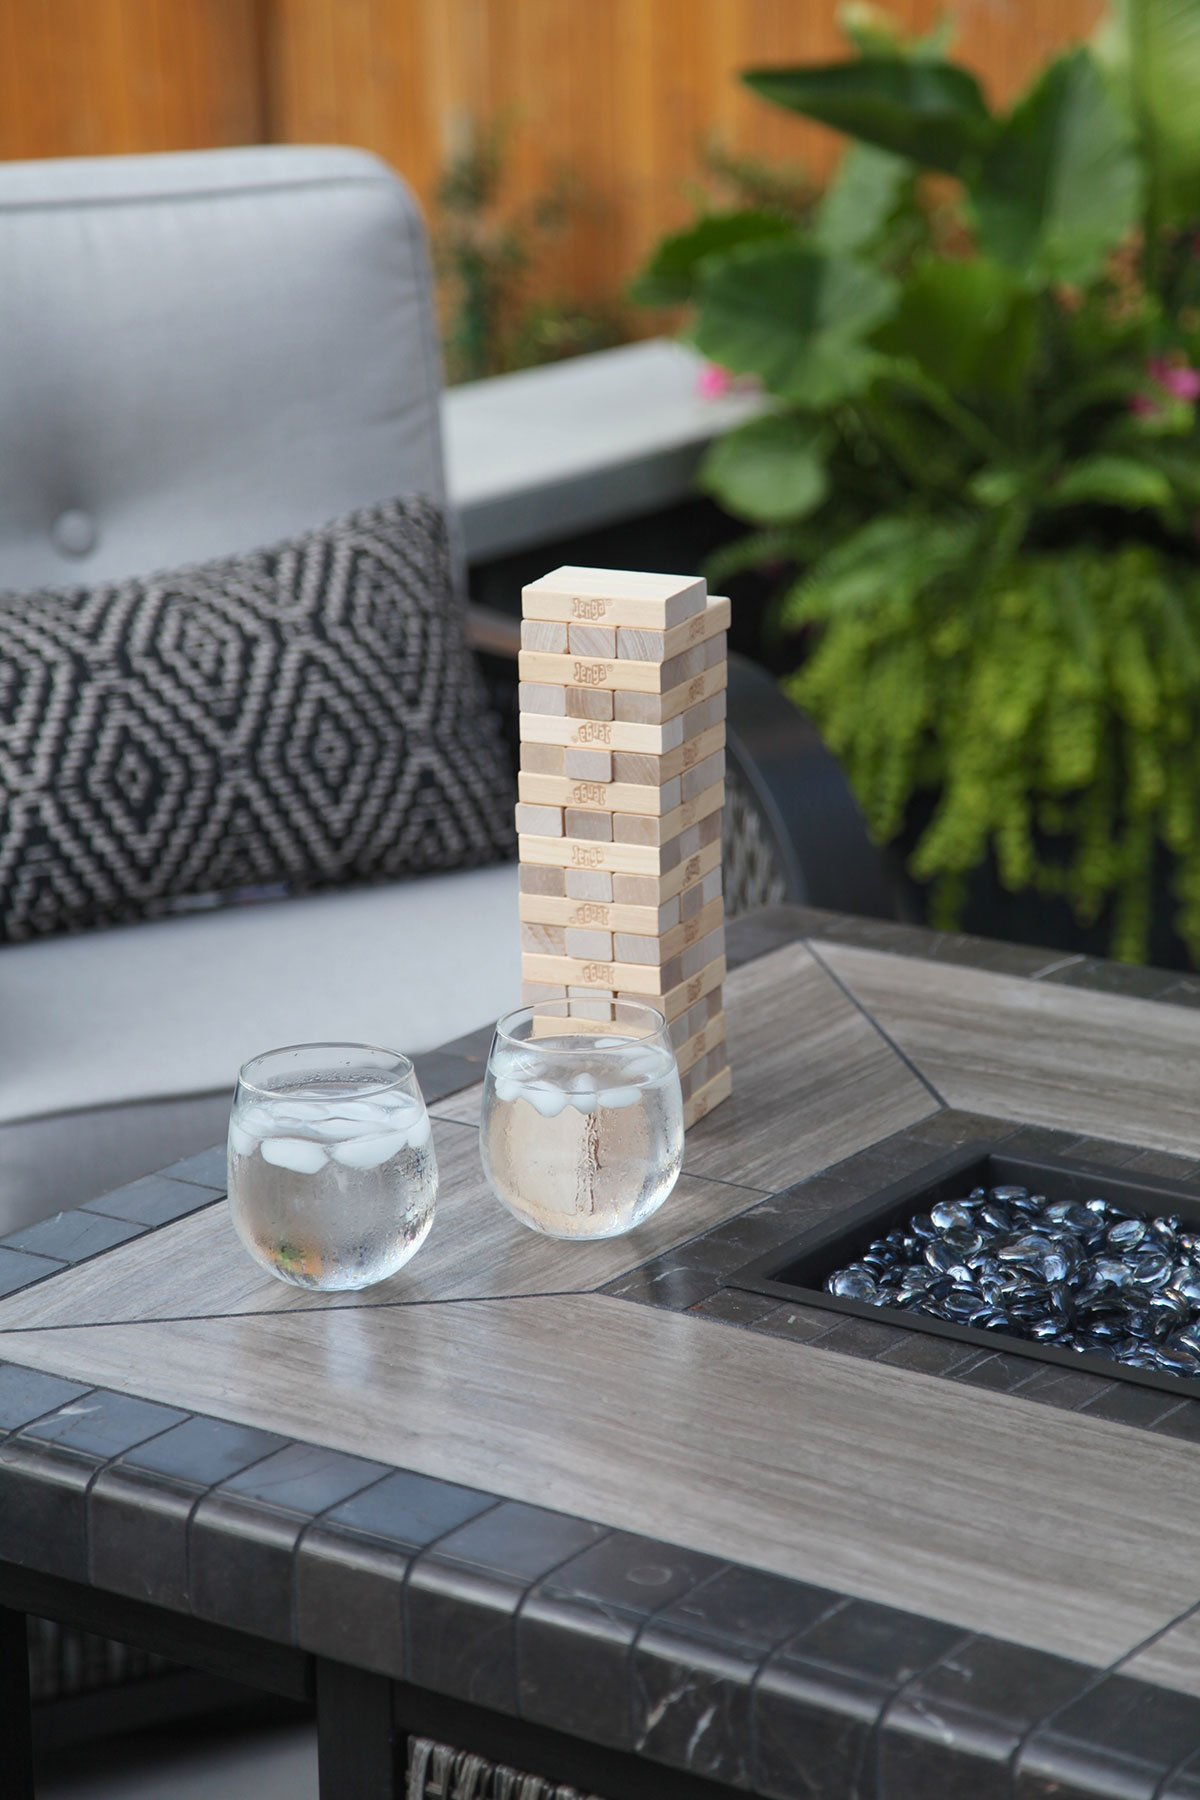 game and drinks on outdoor fire pit table